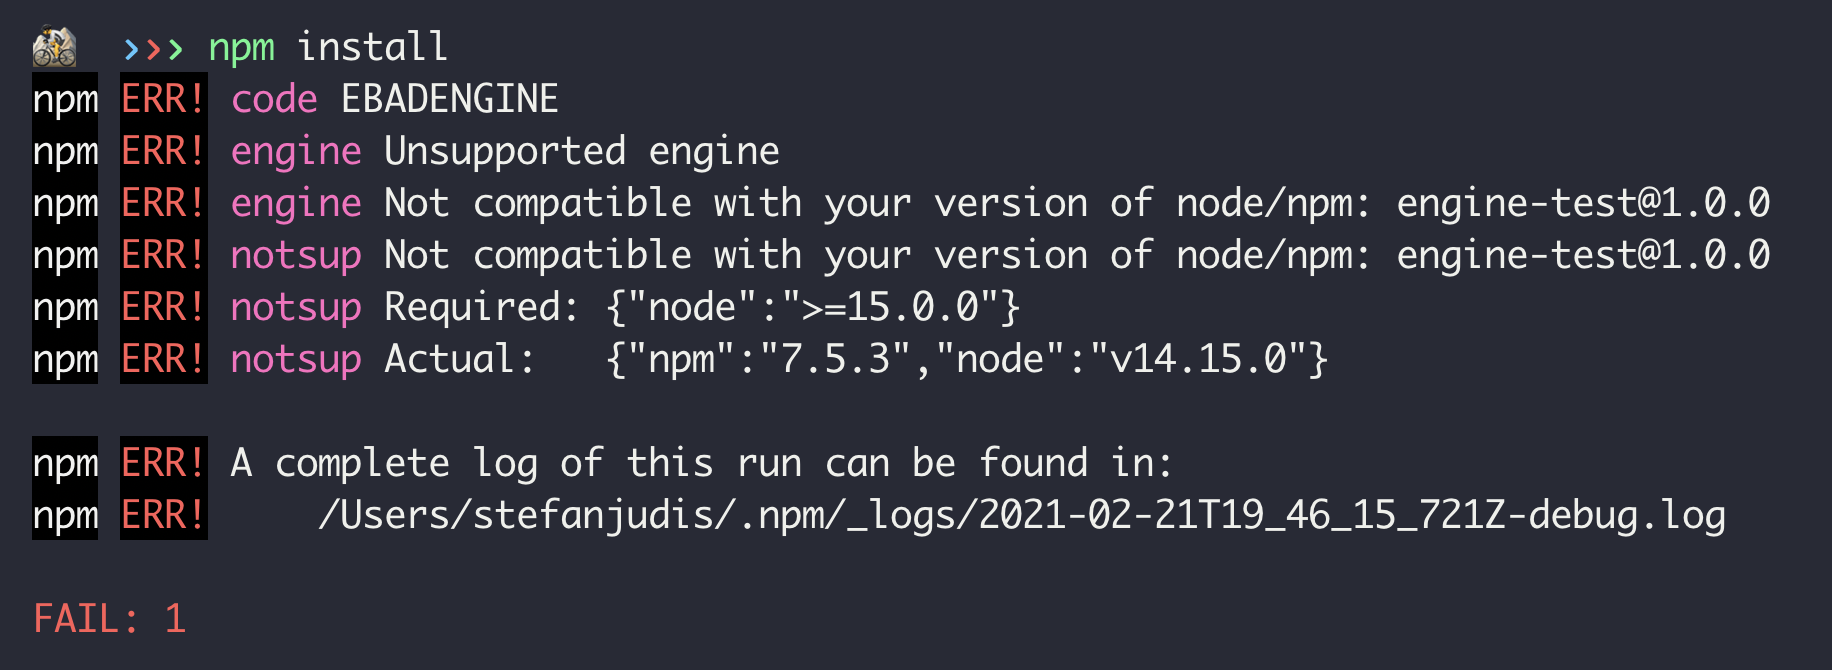 A cli log of a failed npm install due to Node.js version mismatch